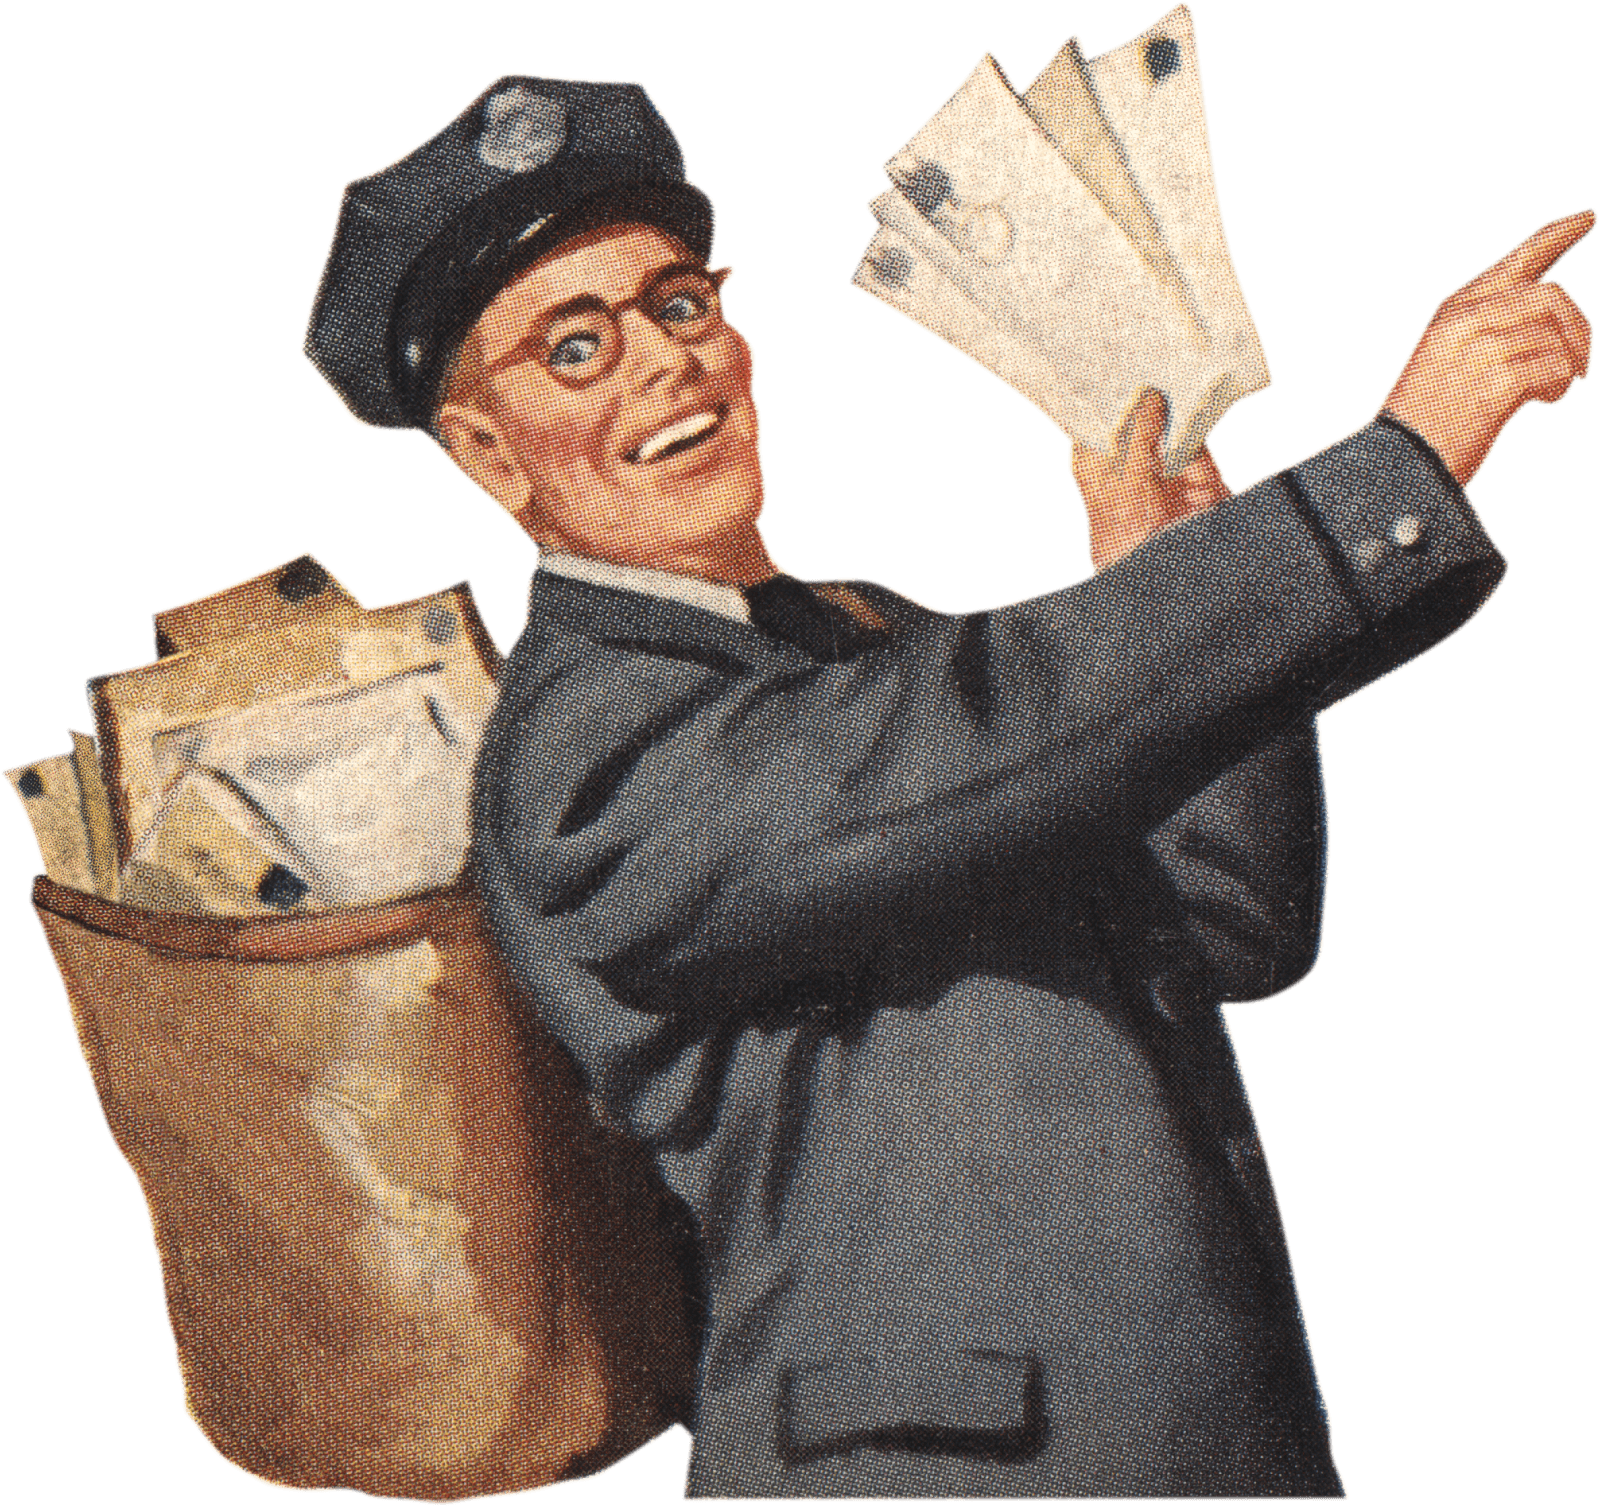 Vintage people png. Postman photos